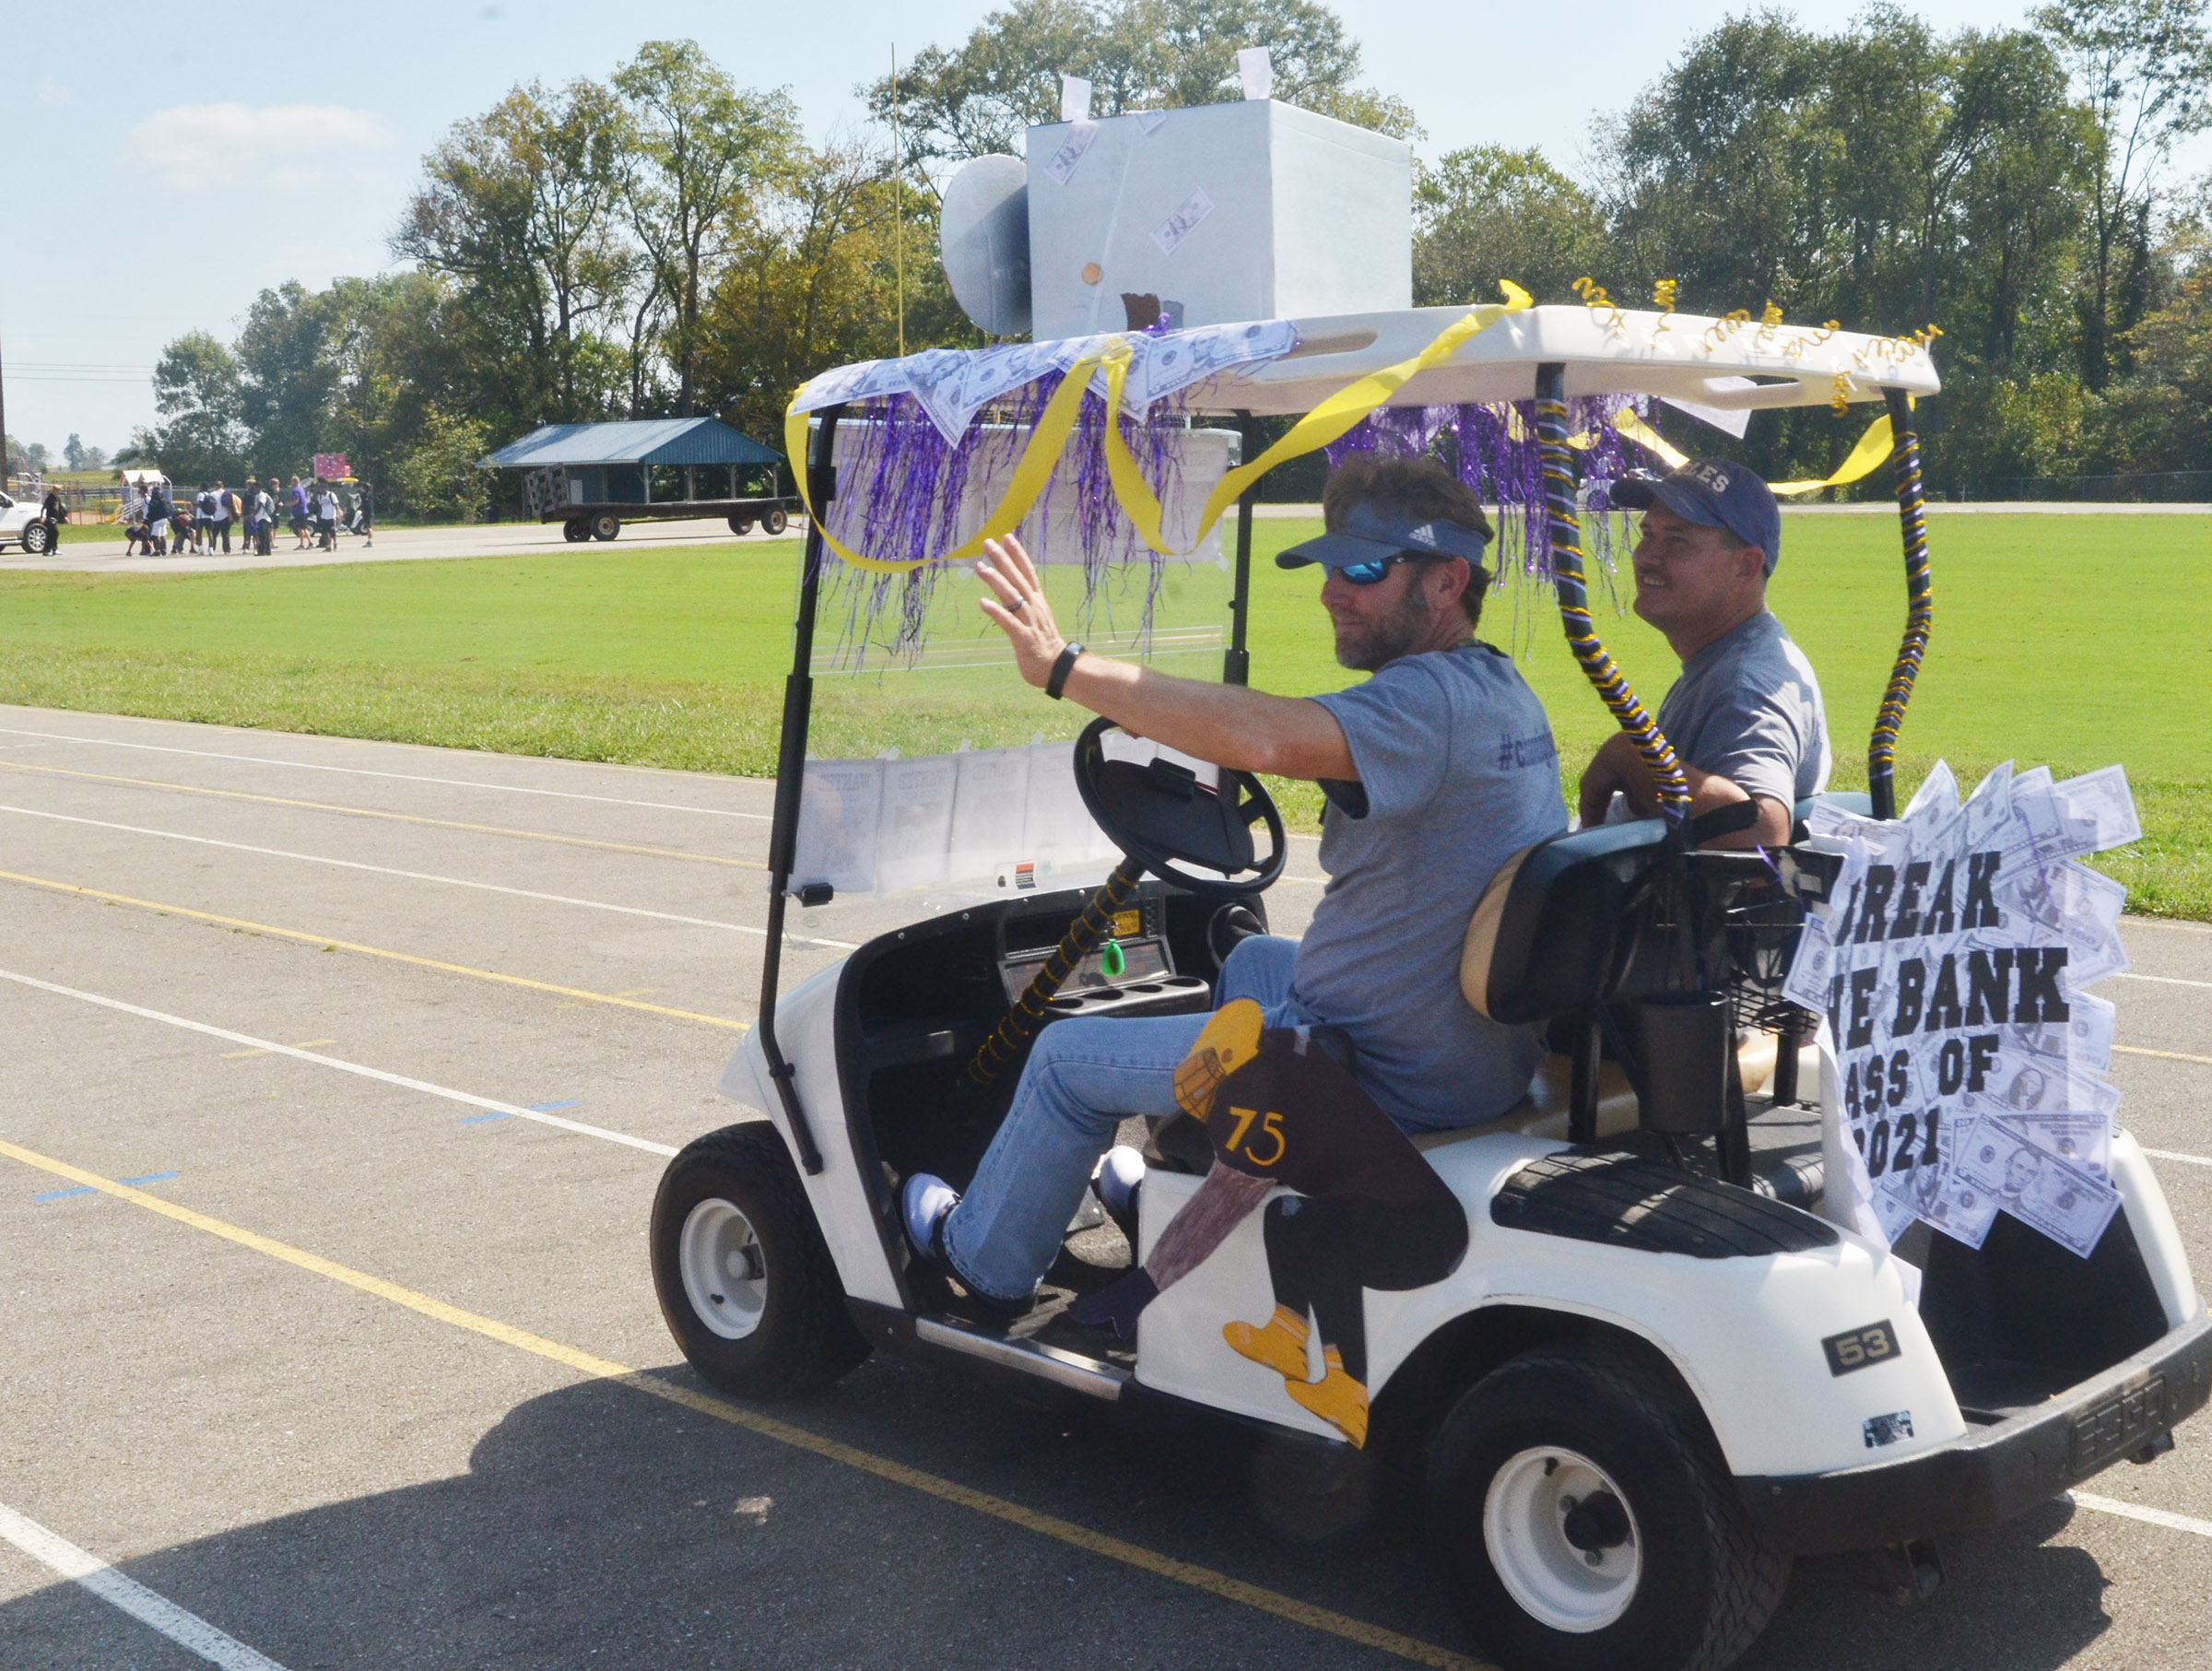 CHS teacher Herb Wiseman, at left, and custodian David Mardis ride in the parade.